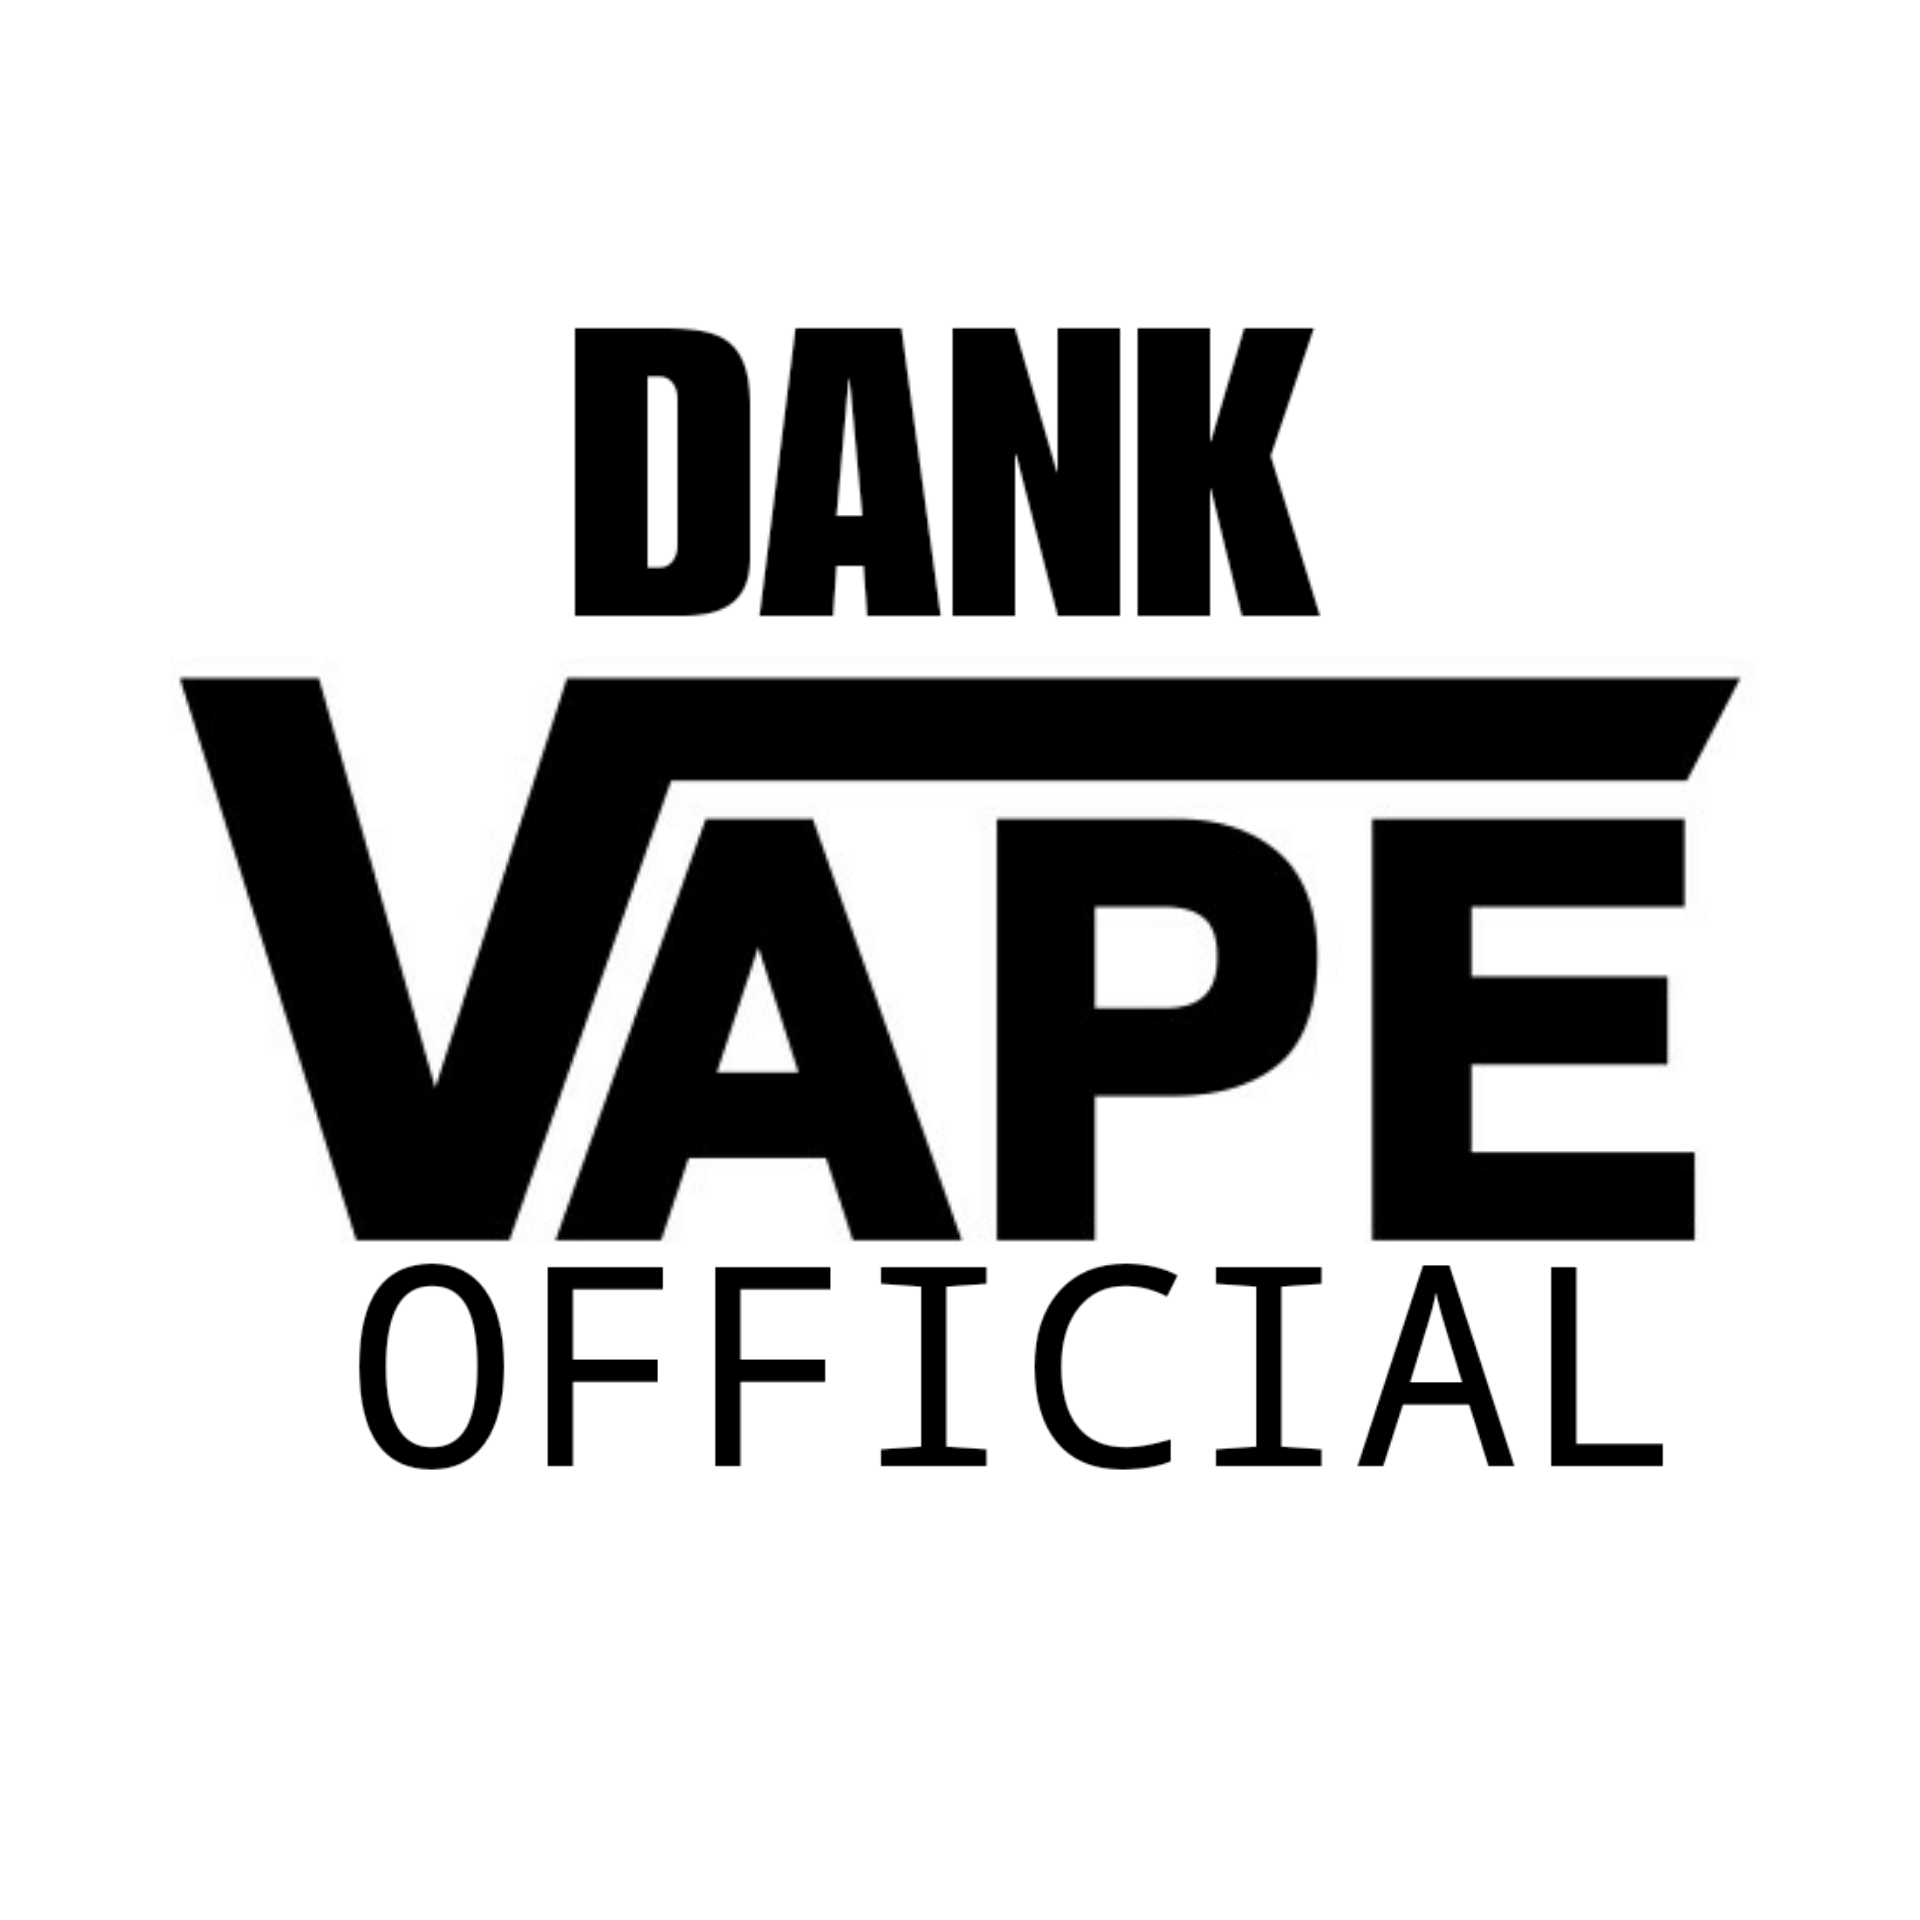 Dank Vapes Official